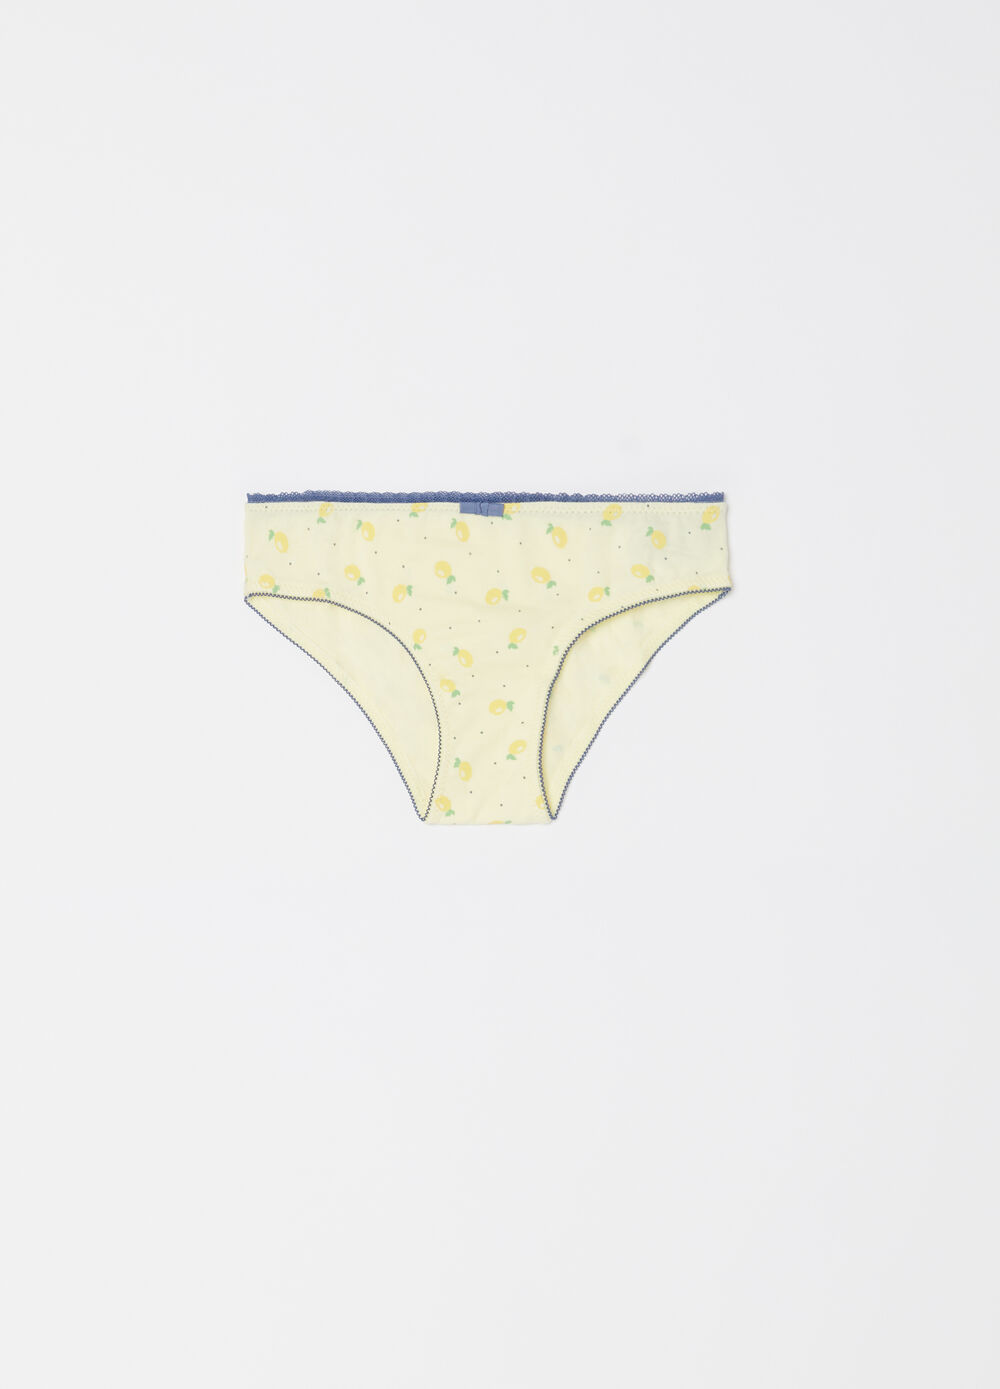 Biocotton briefs with polka dot and lemon pattern